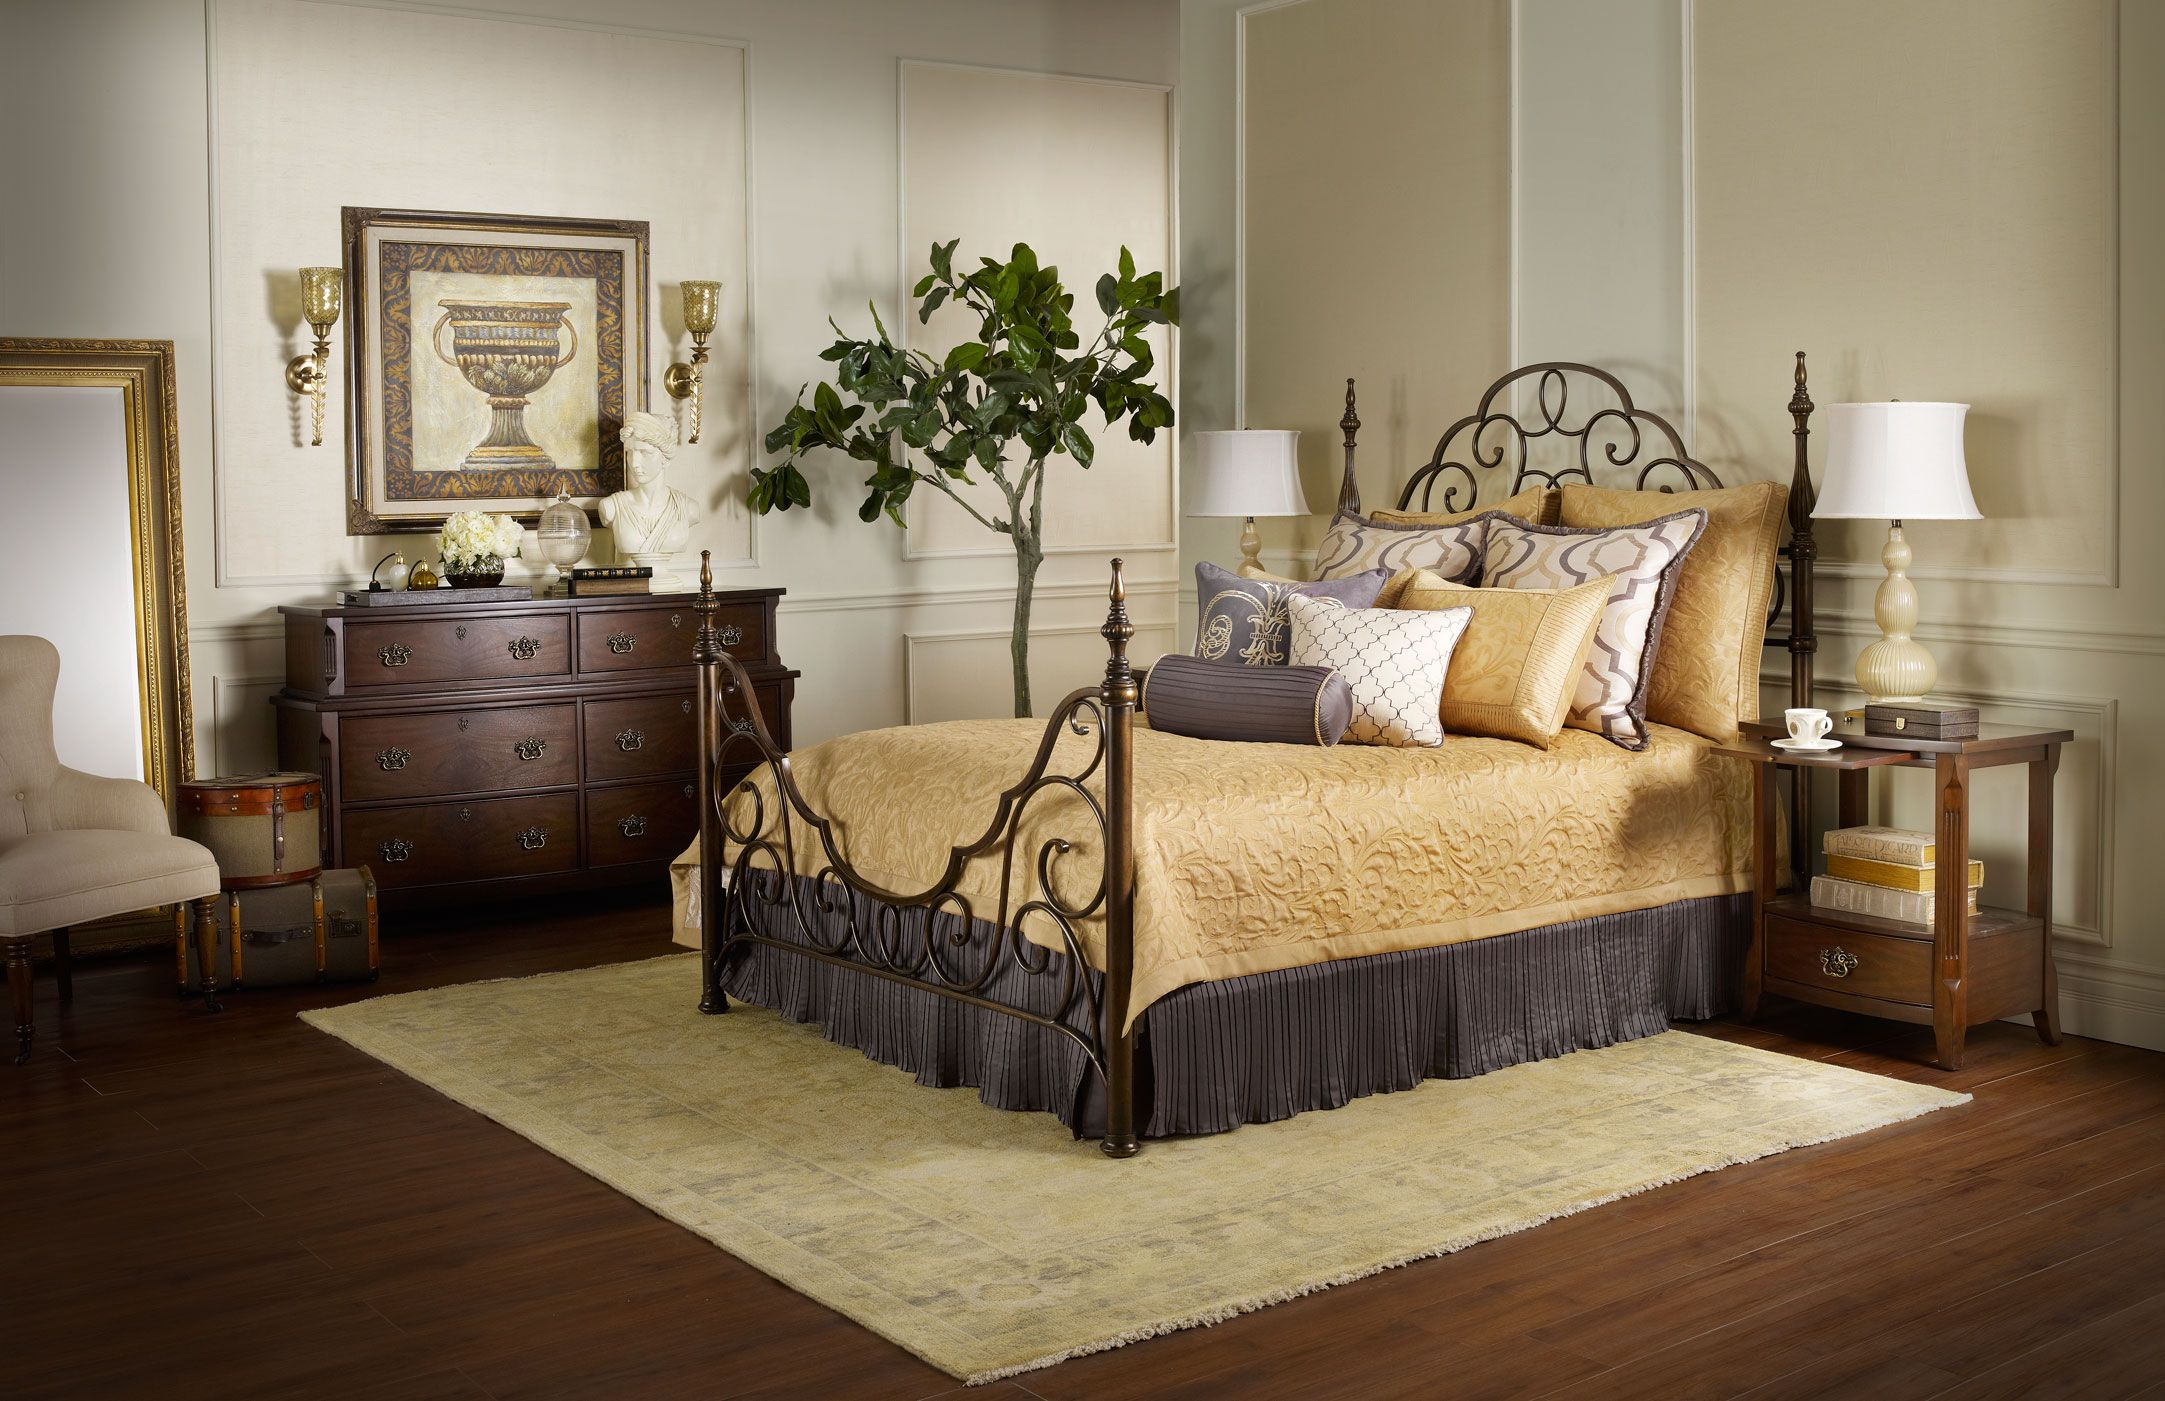 Deauville Bed Bombay Canada Bedroom Decor Bed King Beds